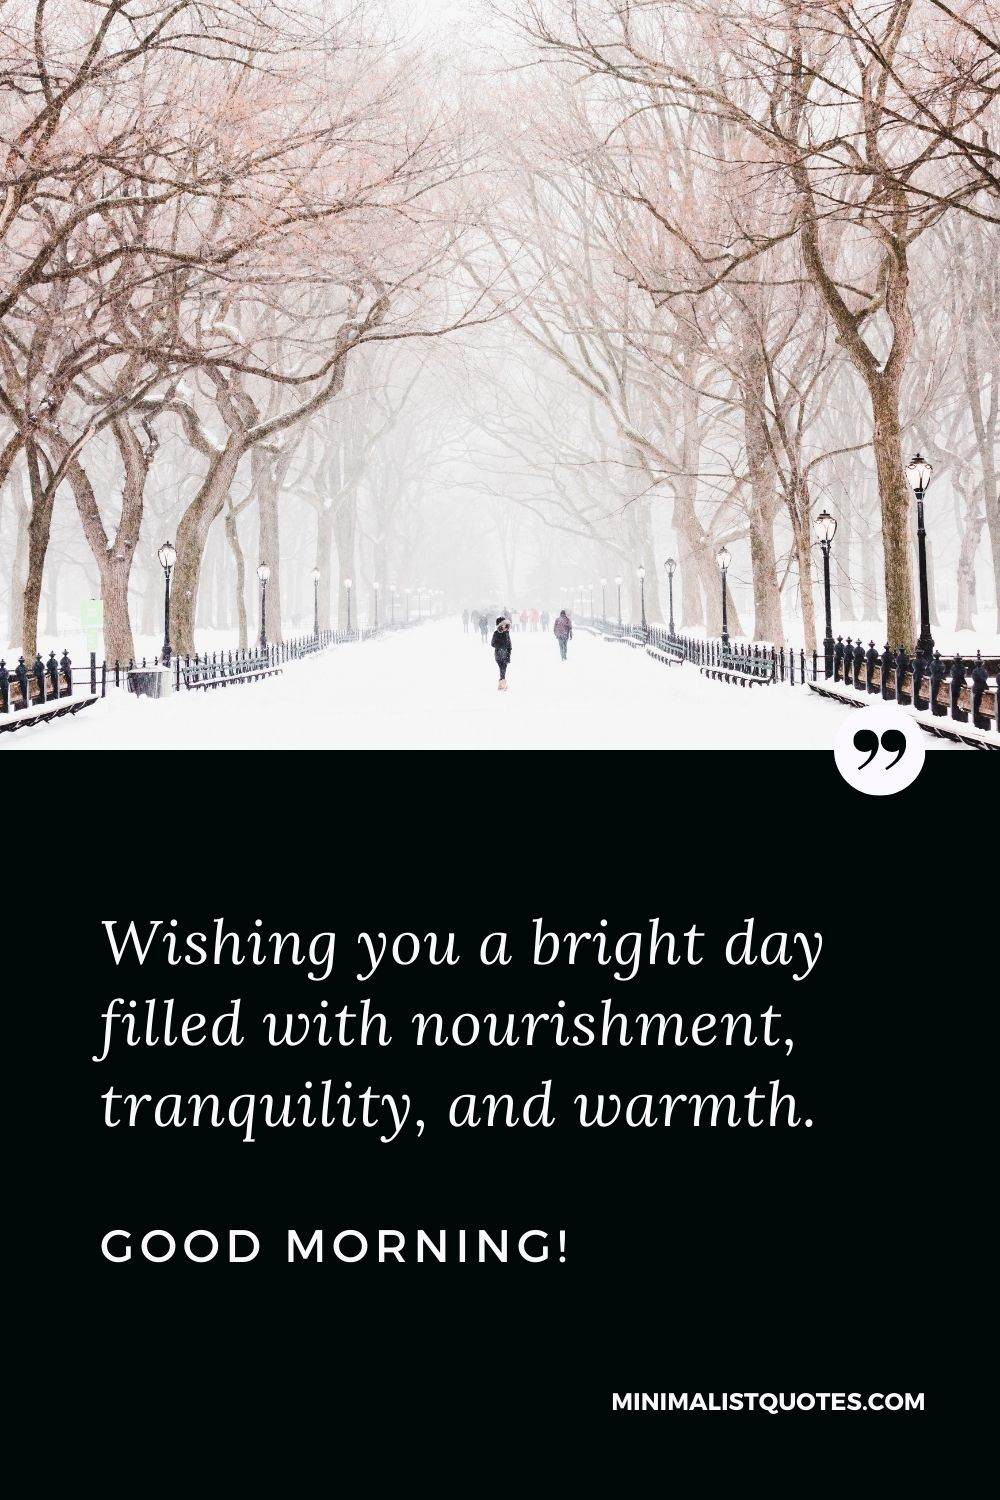 Blessing Morning Quote: Wishing you a bright day filled with nourishment, tranquility, and warmth.Good Morning!